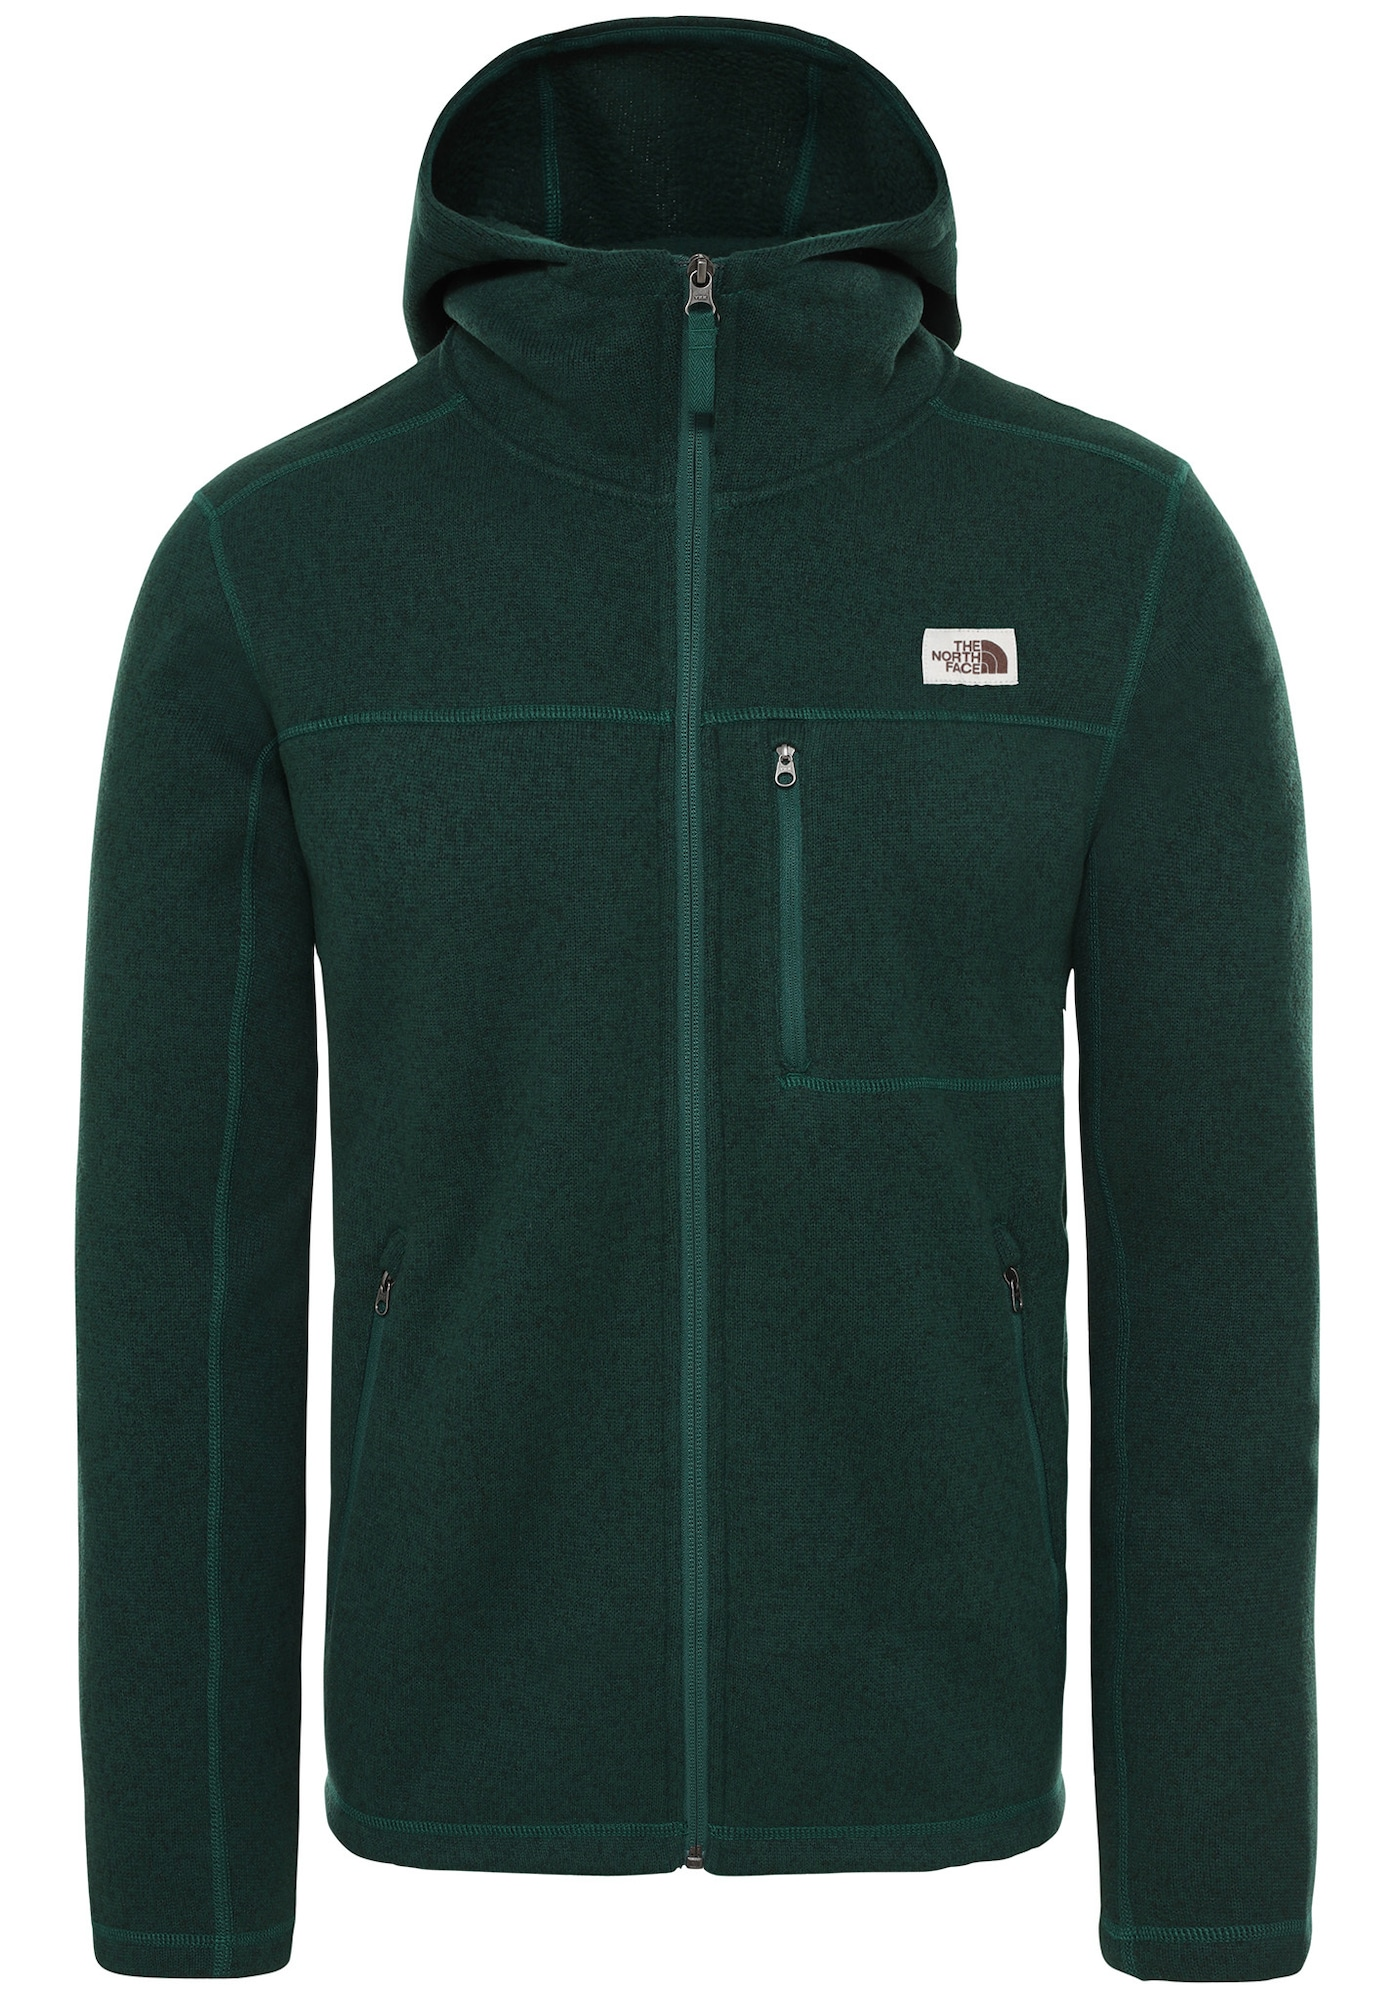 Fleecejacke 'Gordon Lyons' | Bekleidung > Jacken > Fleecejacken | The North Face